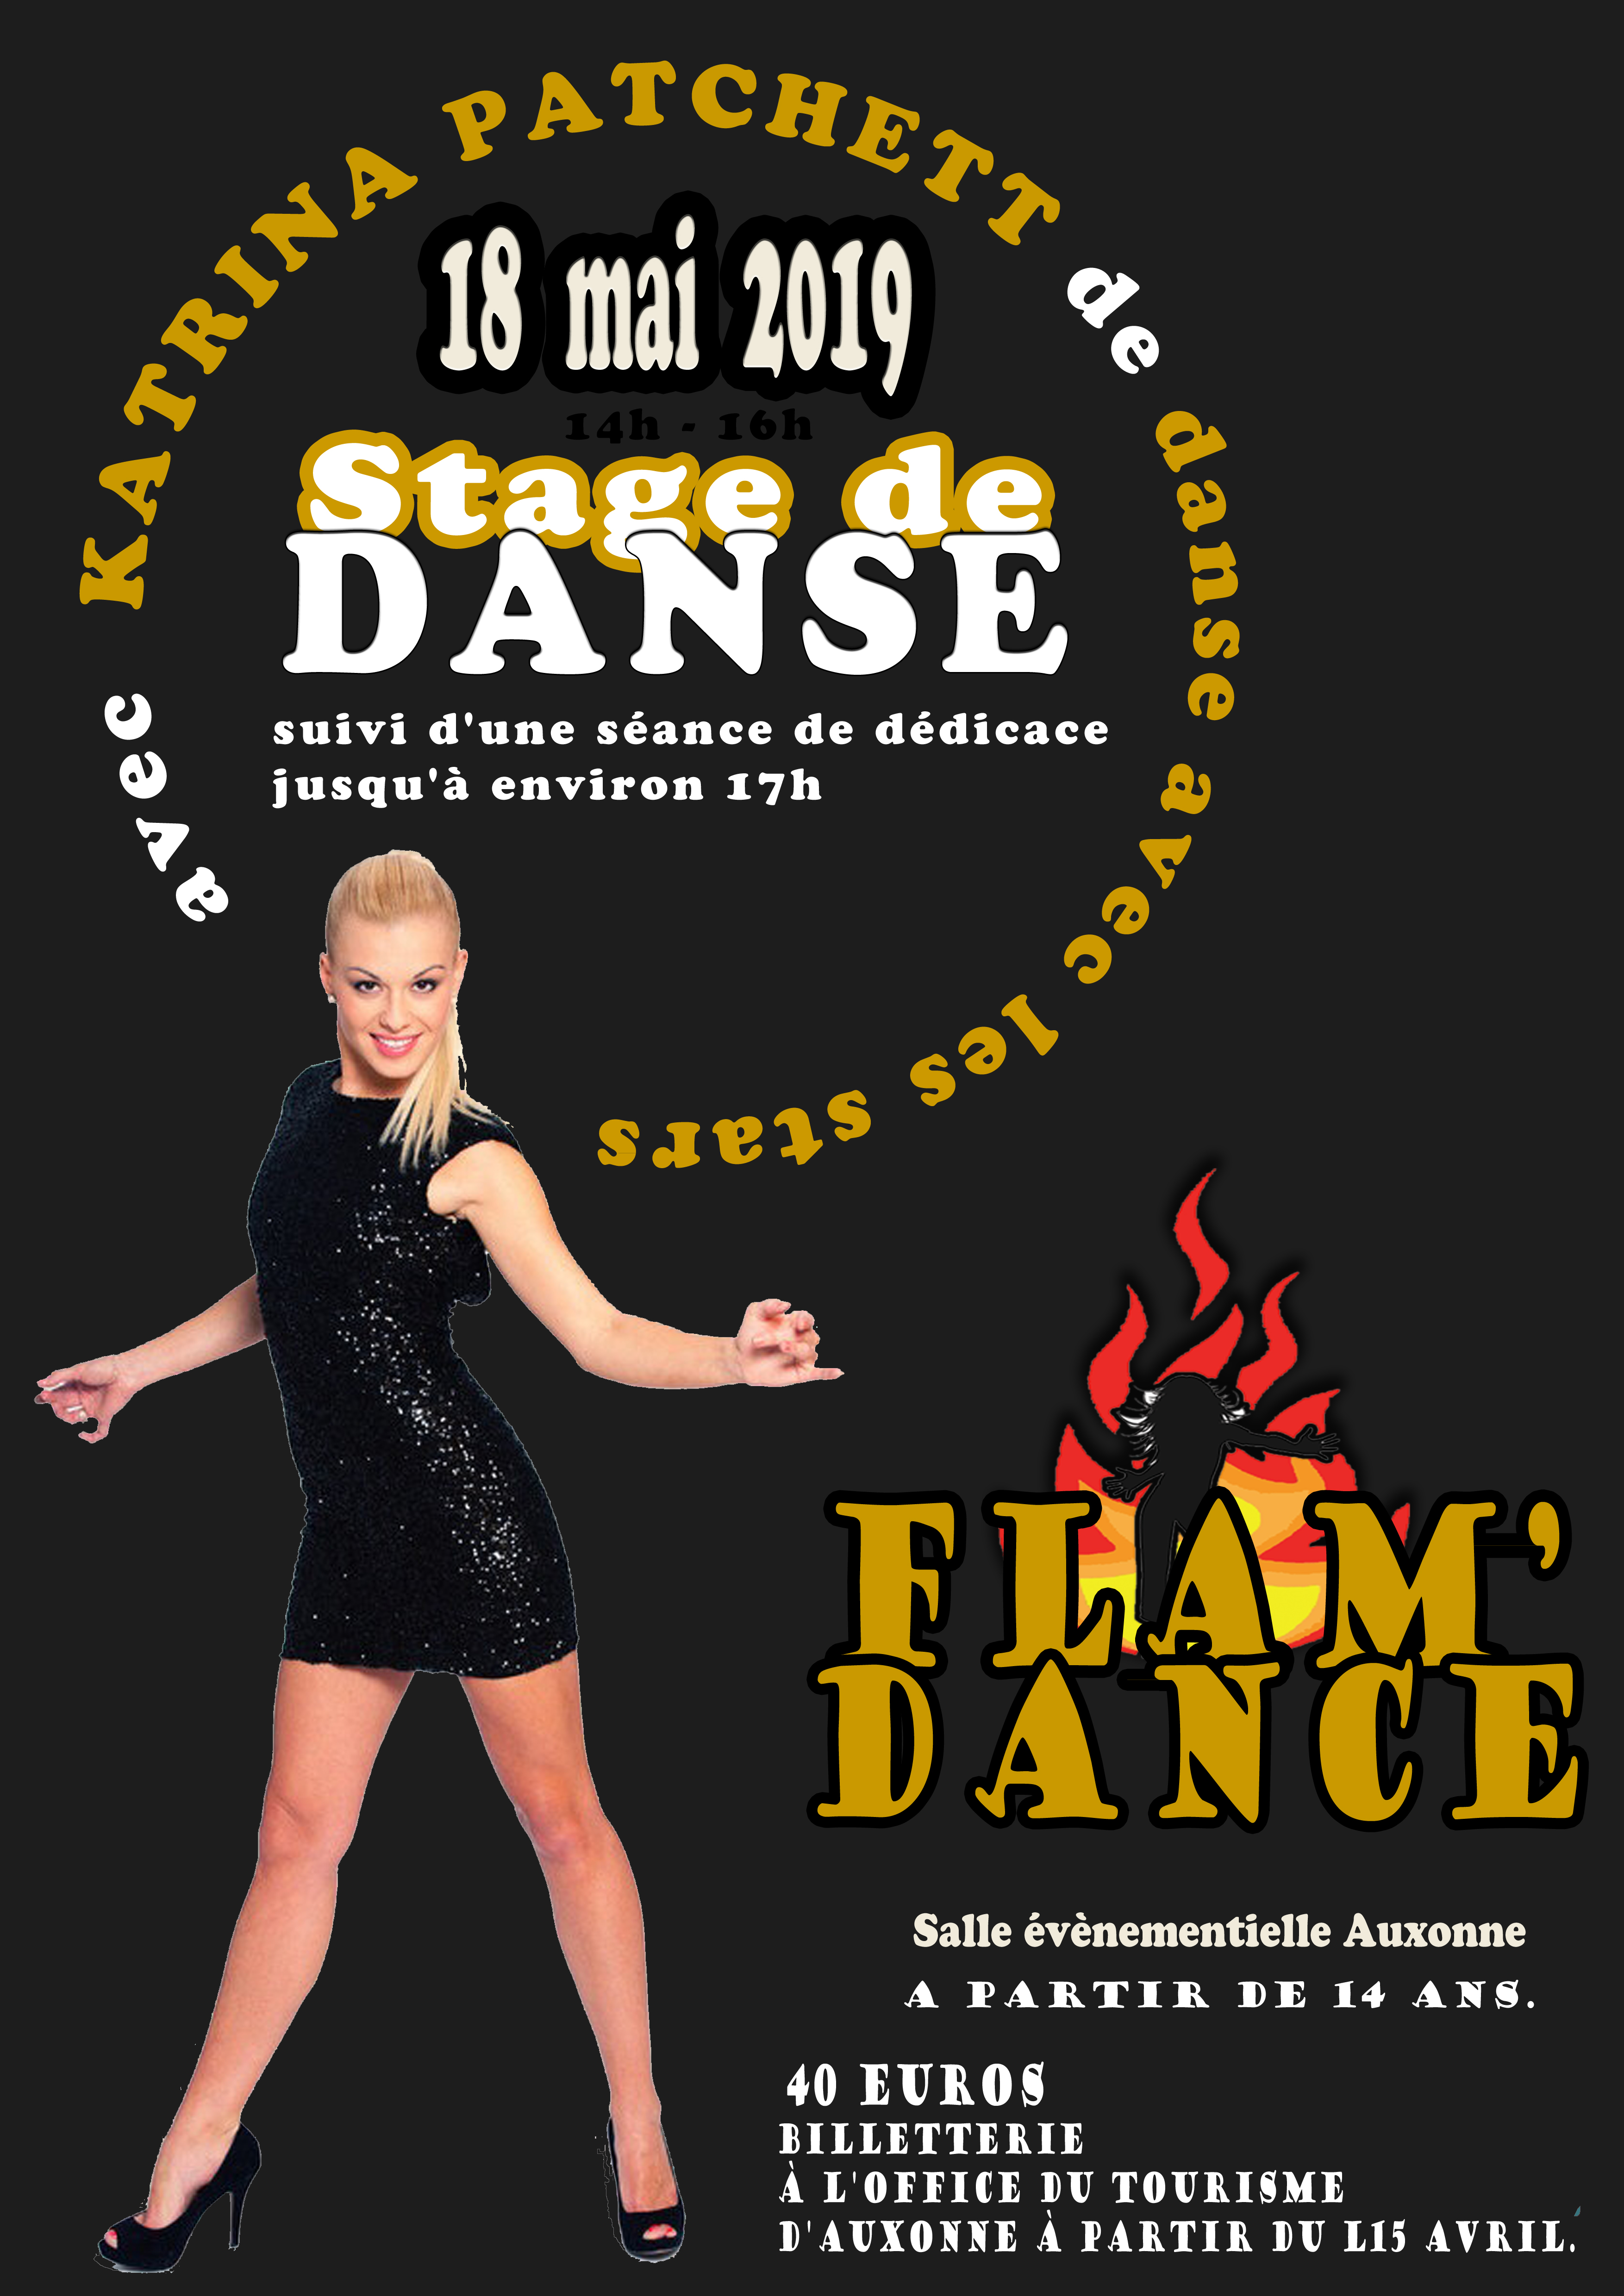 stage de danse flam version fond noir